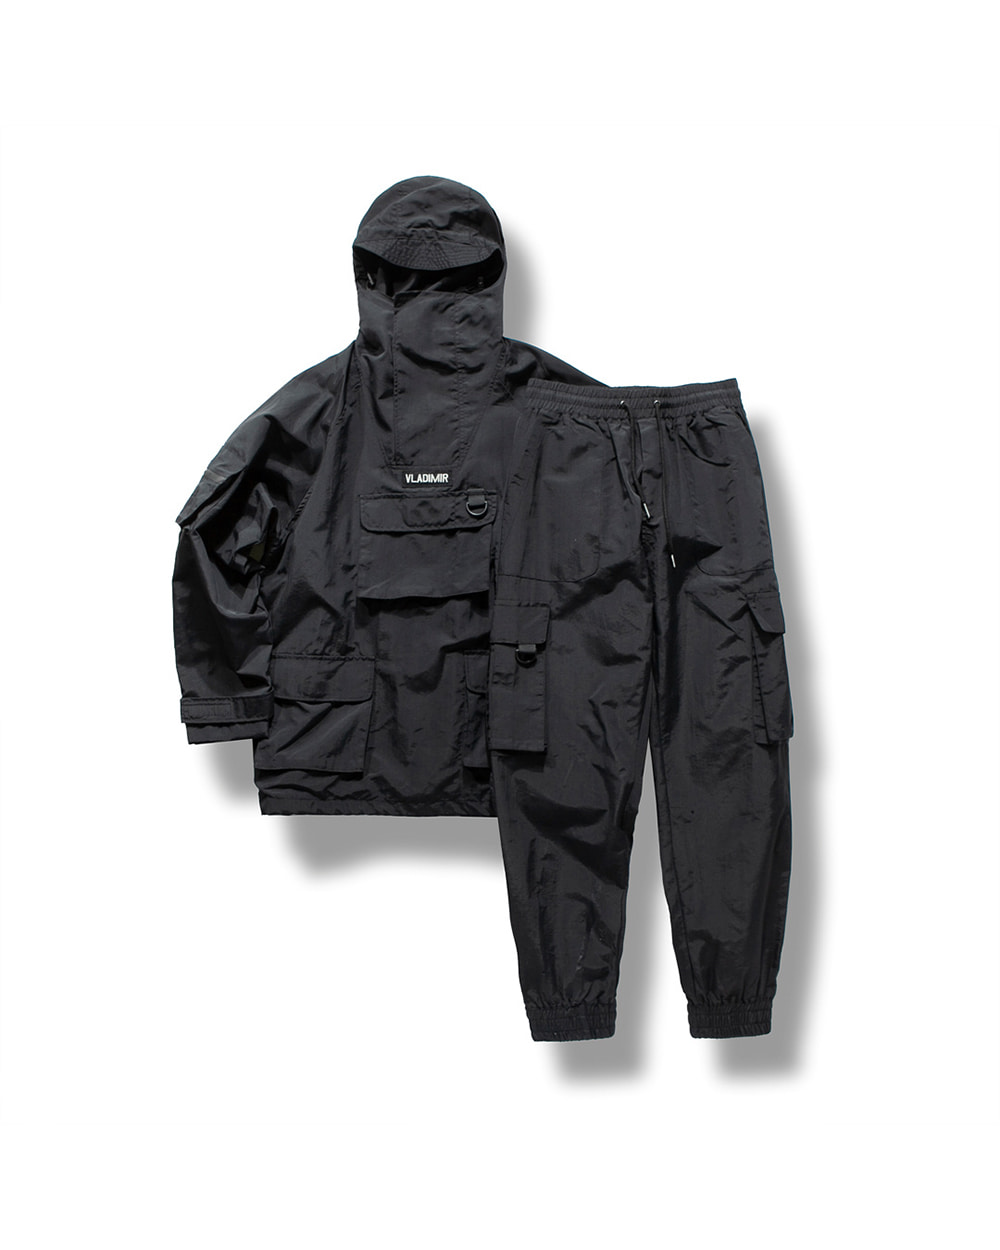 (VLADIMIR) WATERPROOF UTILITY SET-UP BLACK